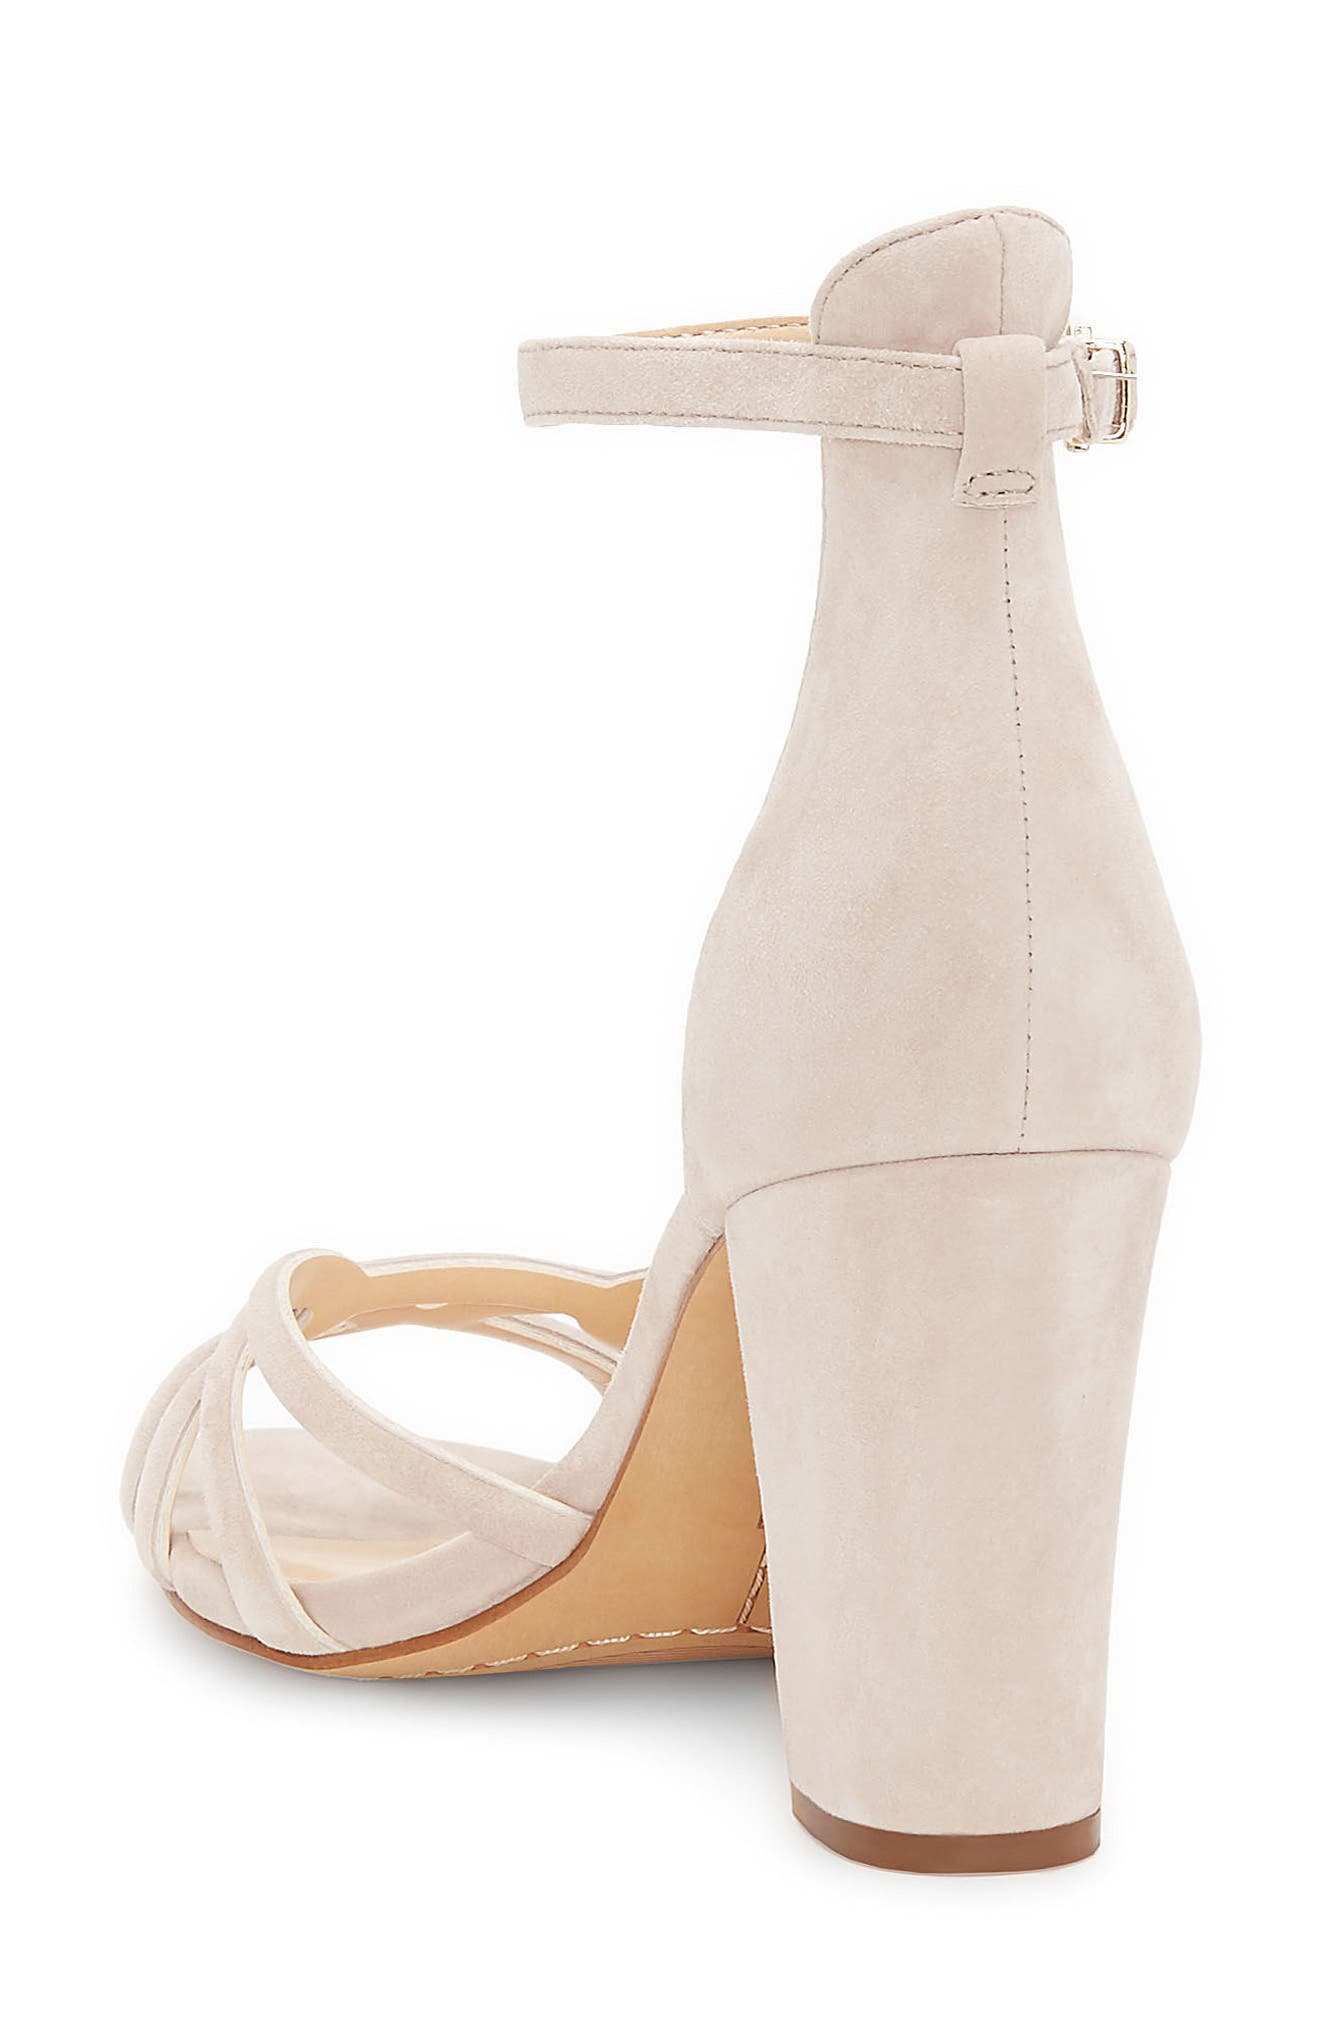 Catelia Ankle Strap Sandal,                             Alternate thumbnail 2, color,                             Taupe Suede